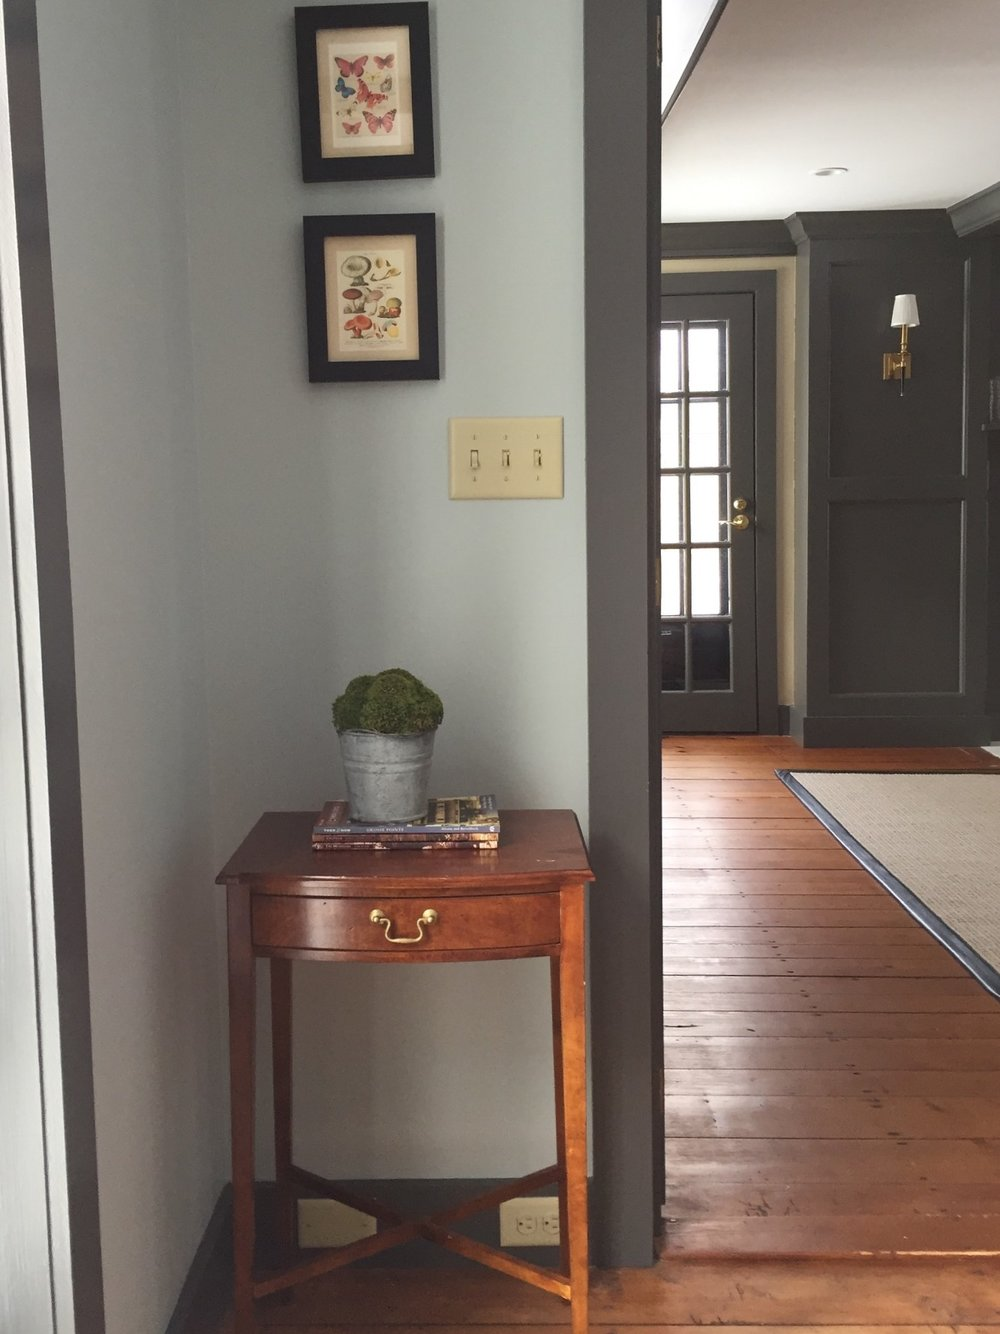 The walls are  Ben Moore's  Woodlawn Blue and the trim is Kendall Charcoal.  It easily brings you into the office where the trim is Kendall Charcoal with Muslin walls.